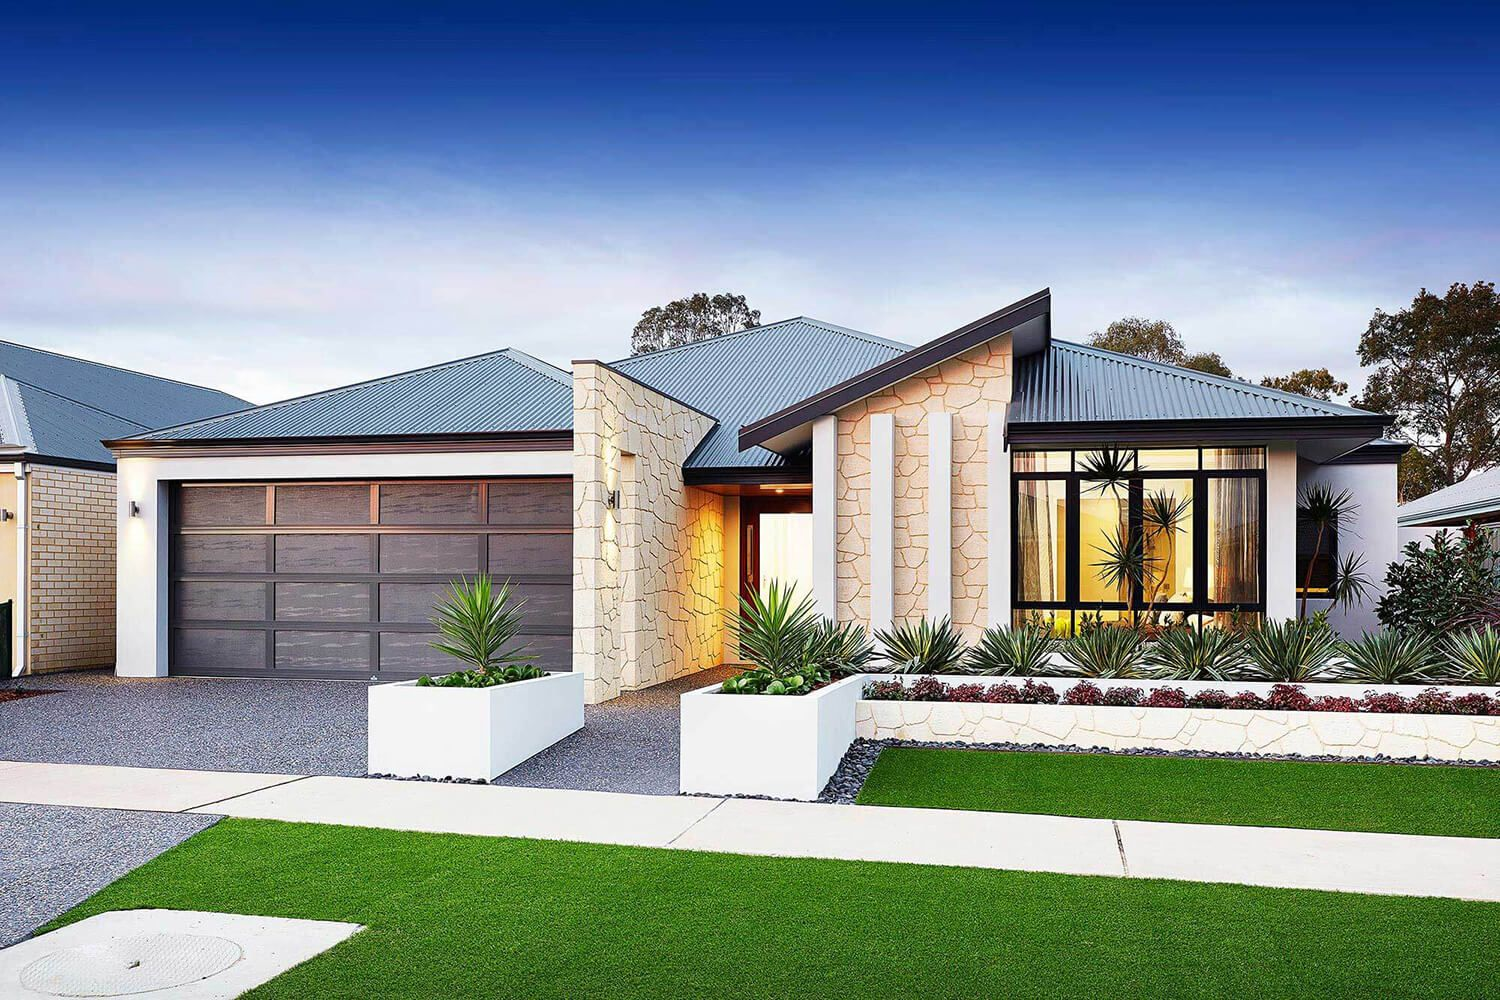 The norfolk norfolk perth and bedrooms the norfolk blueprint homes malvernweather Gallery